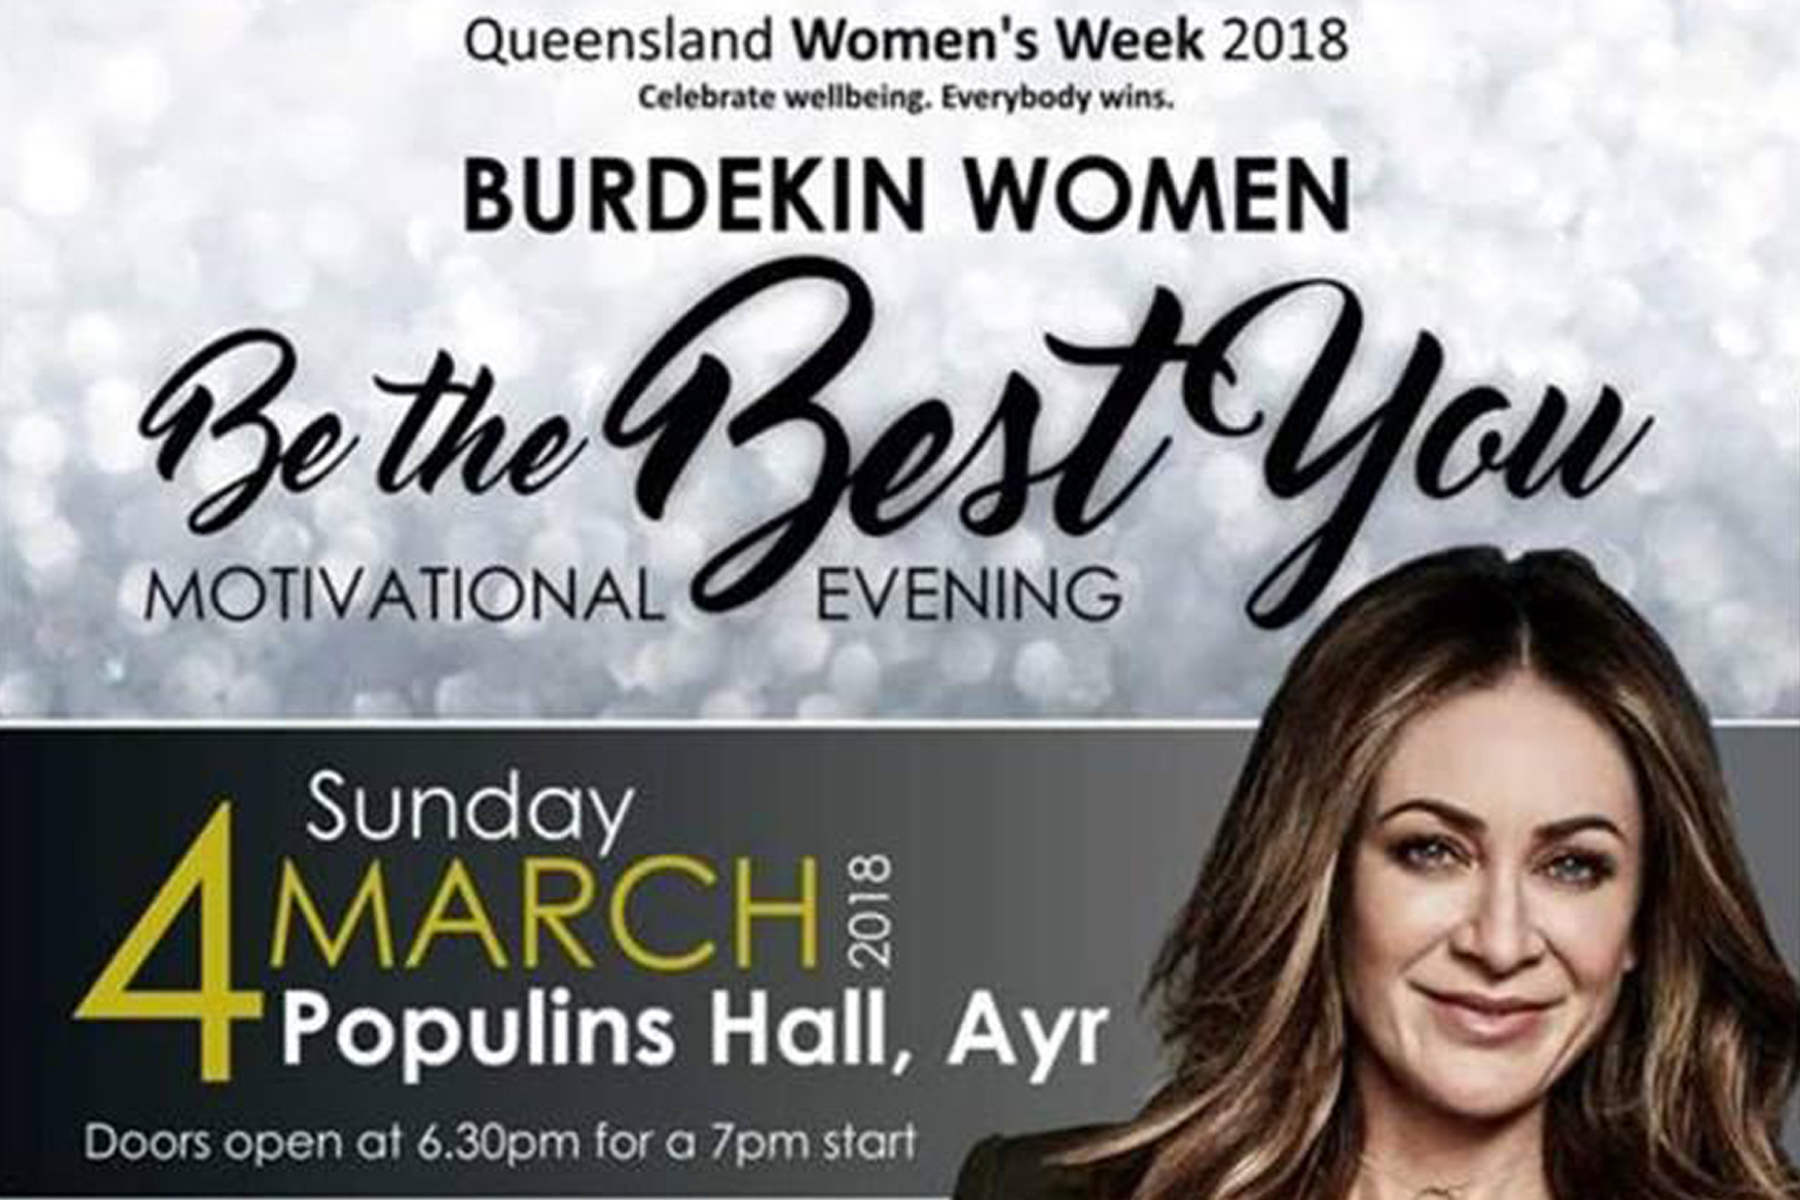 Burdekin Women Be the Best You Motivational Evening